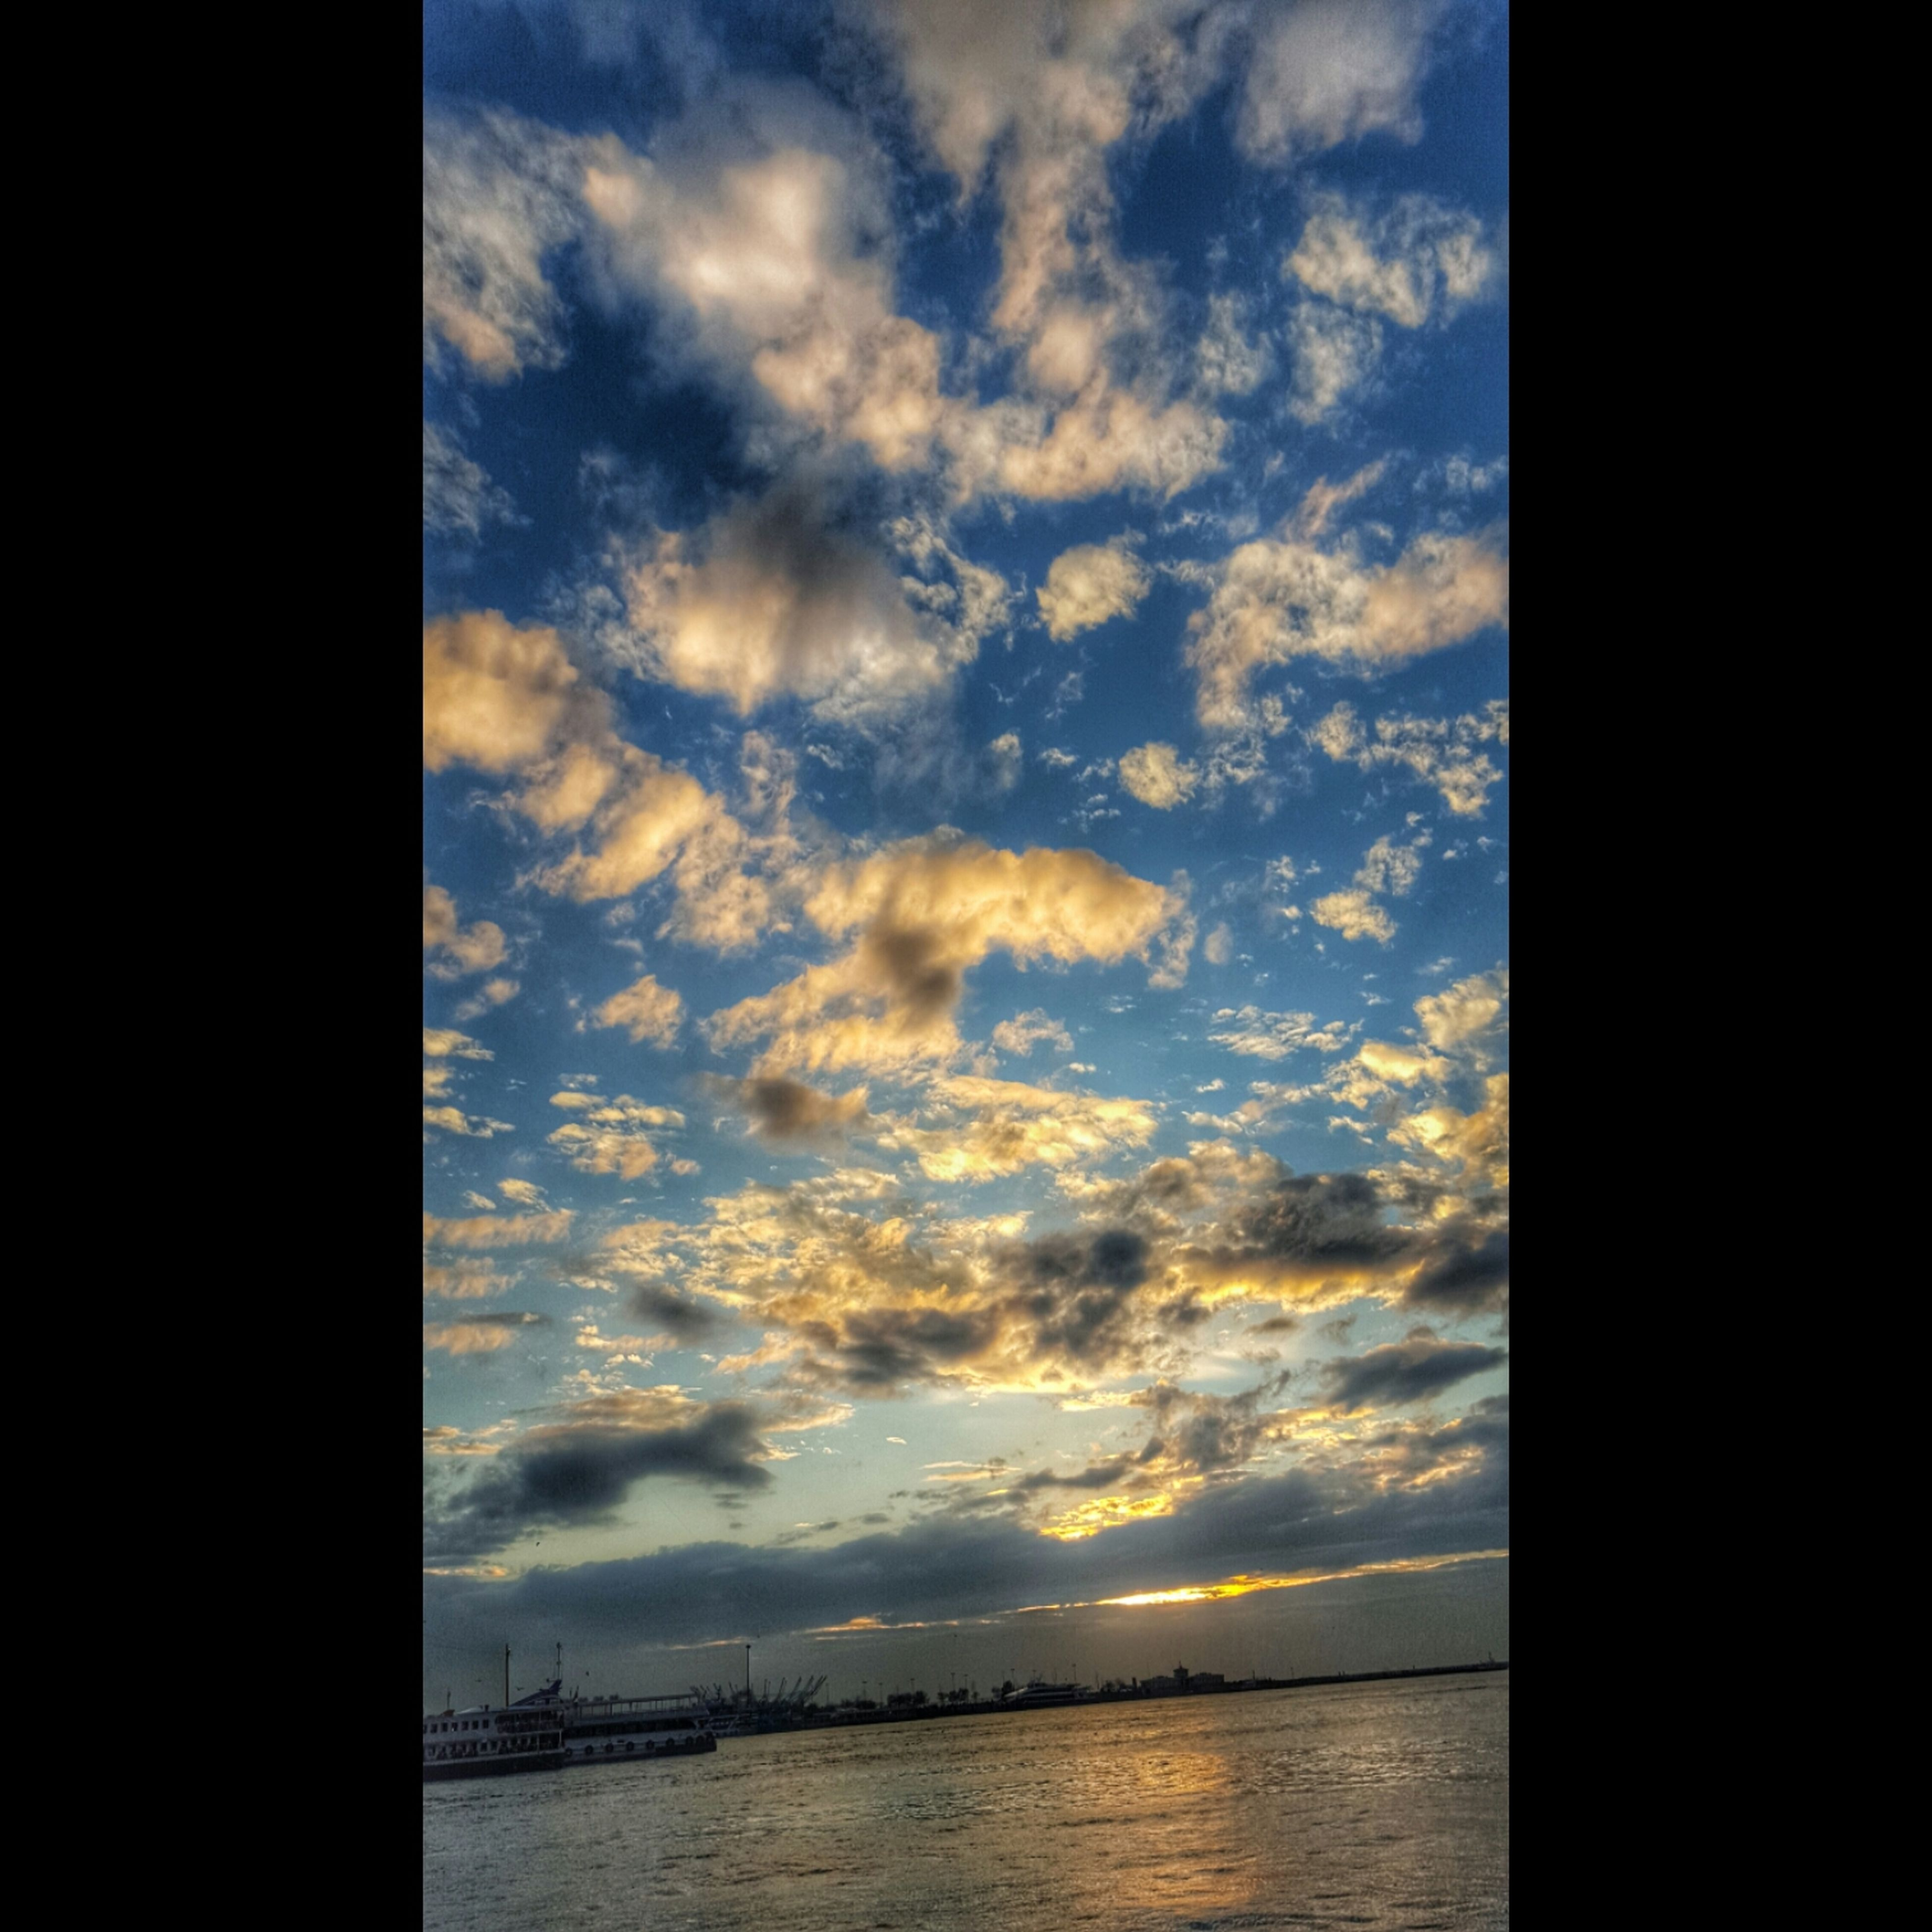 sky, water, sea, sunset, scenics, tranquility, tranquil scene, waterfront, cloud - sky, beauty in nature, silhouette, horizon over water, nature, cloud, idyllic, cloudy, reflection, calm, outdoors, no people